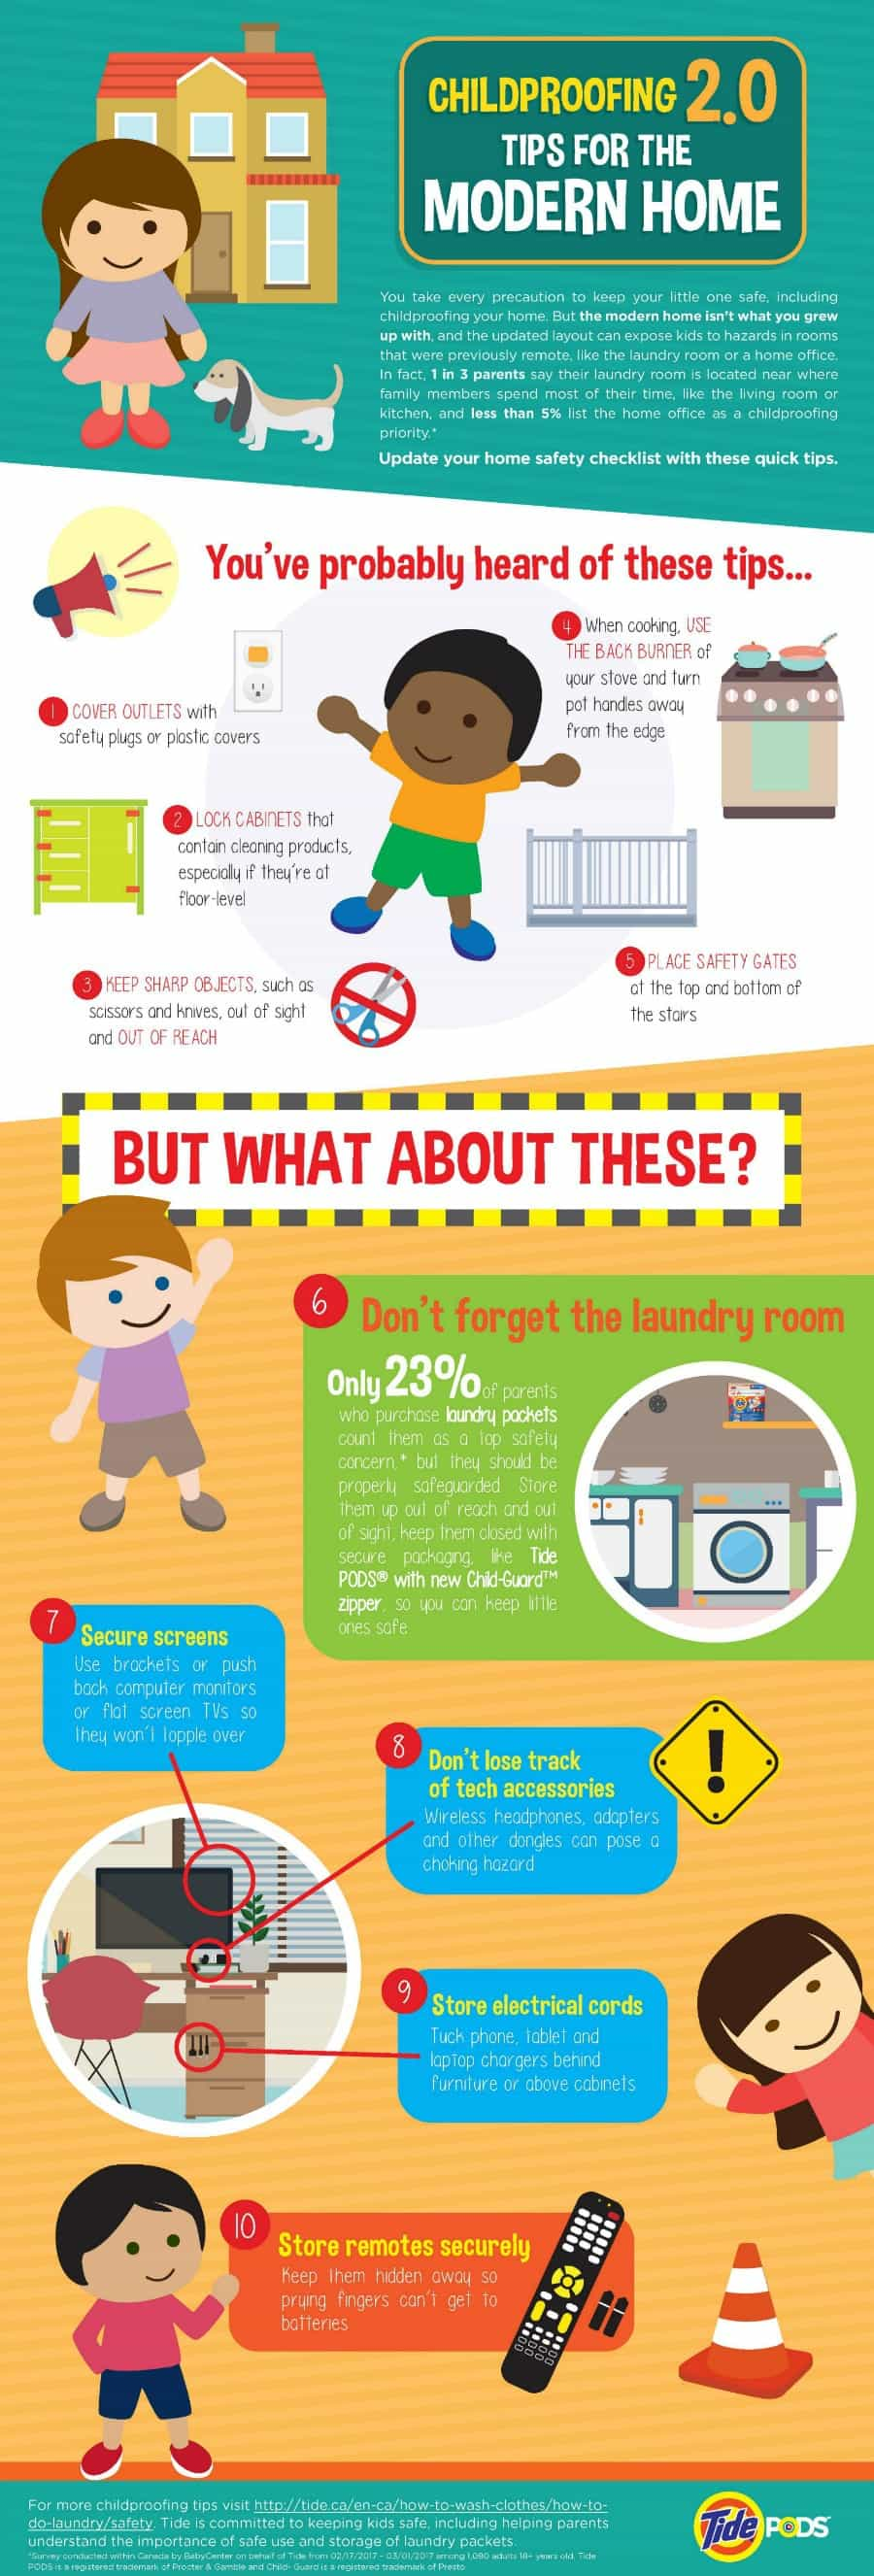 childproofing-2-0-tips-for-the-modern-home-canada